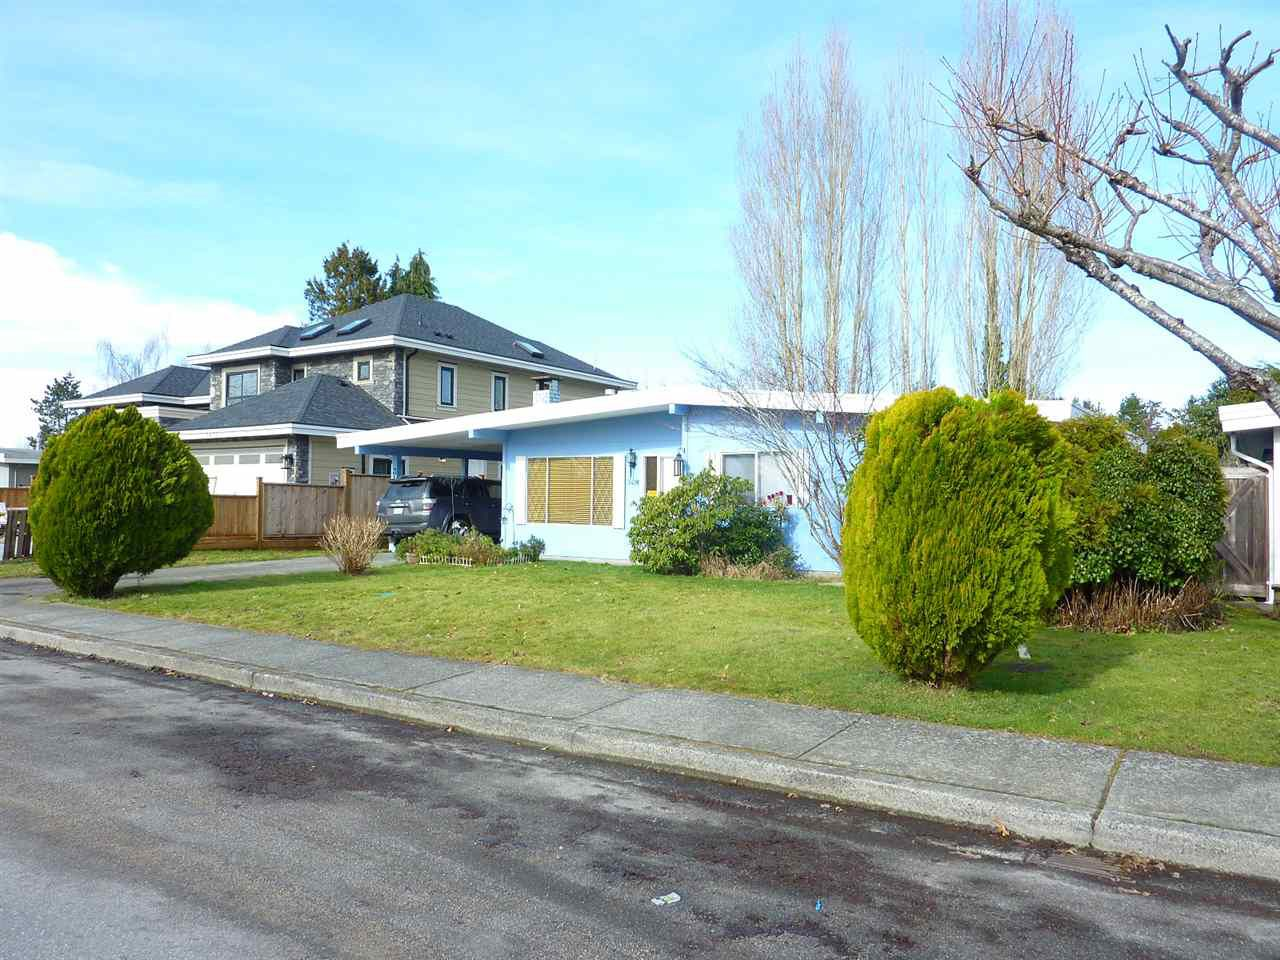 Main Photo: 3491 SPRINGFORD Avenue in Richmond: Steveston North House for sale : MLS®# R2139973